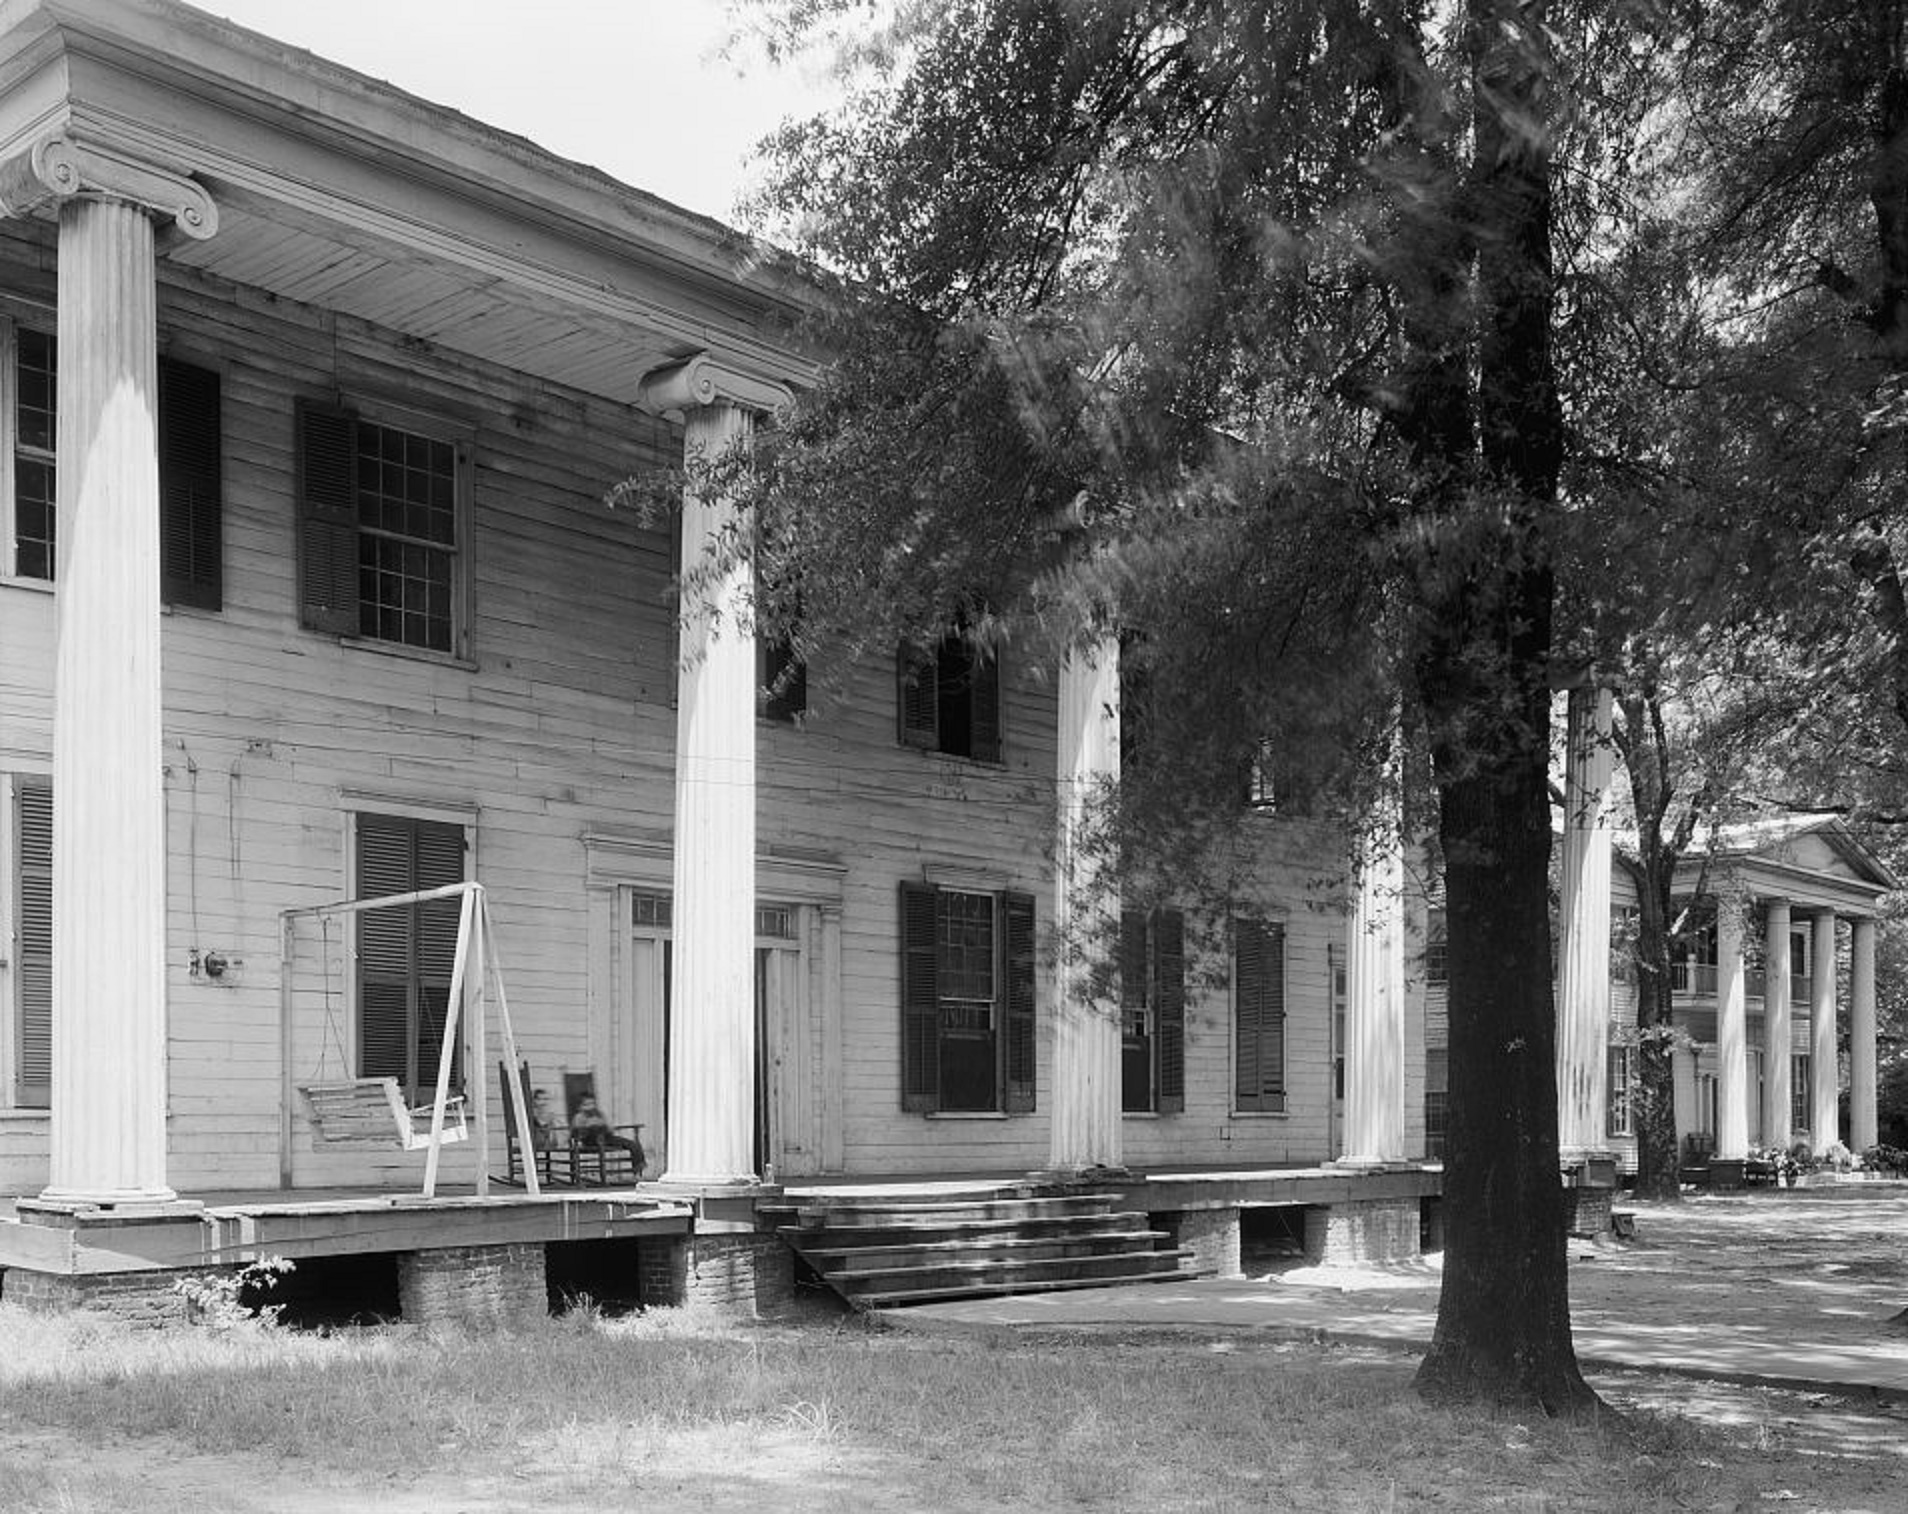 Eutaw Female Academy, also known as the Mesopotamia Female Seminary, Eutaw, Greene County, Alabama2 1939 by photographer Frances Benjamin Johnston